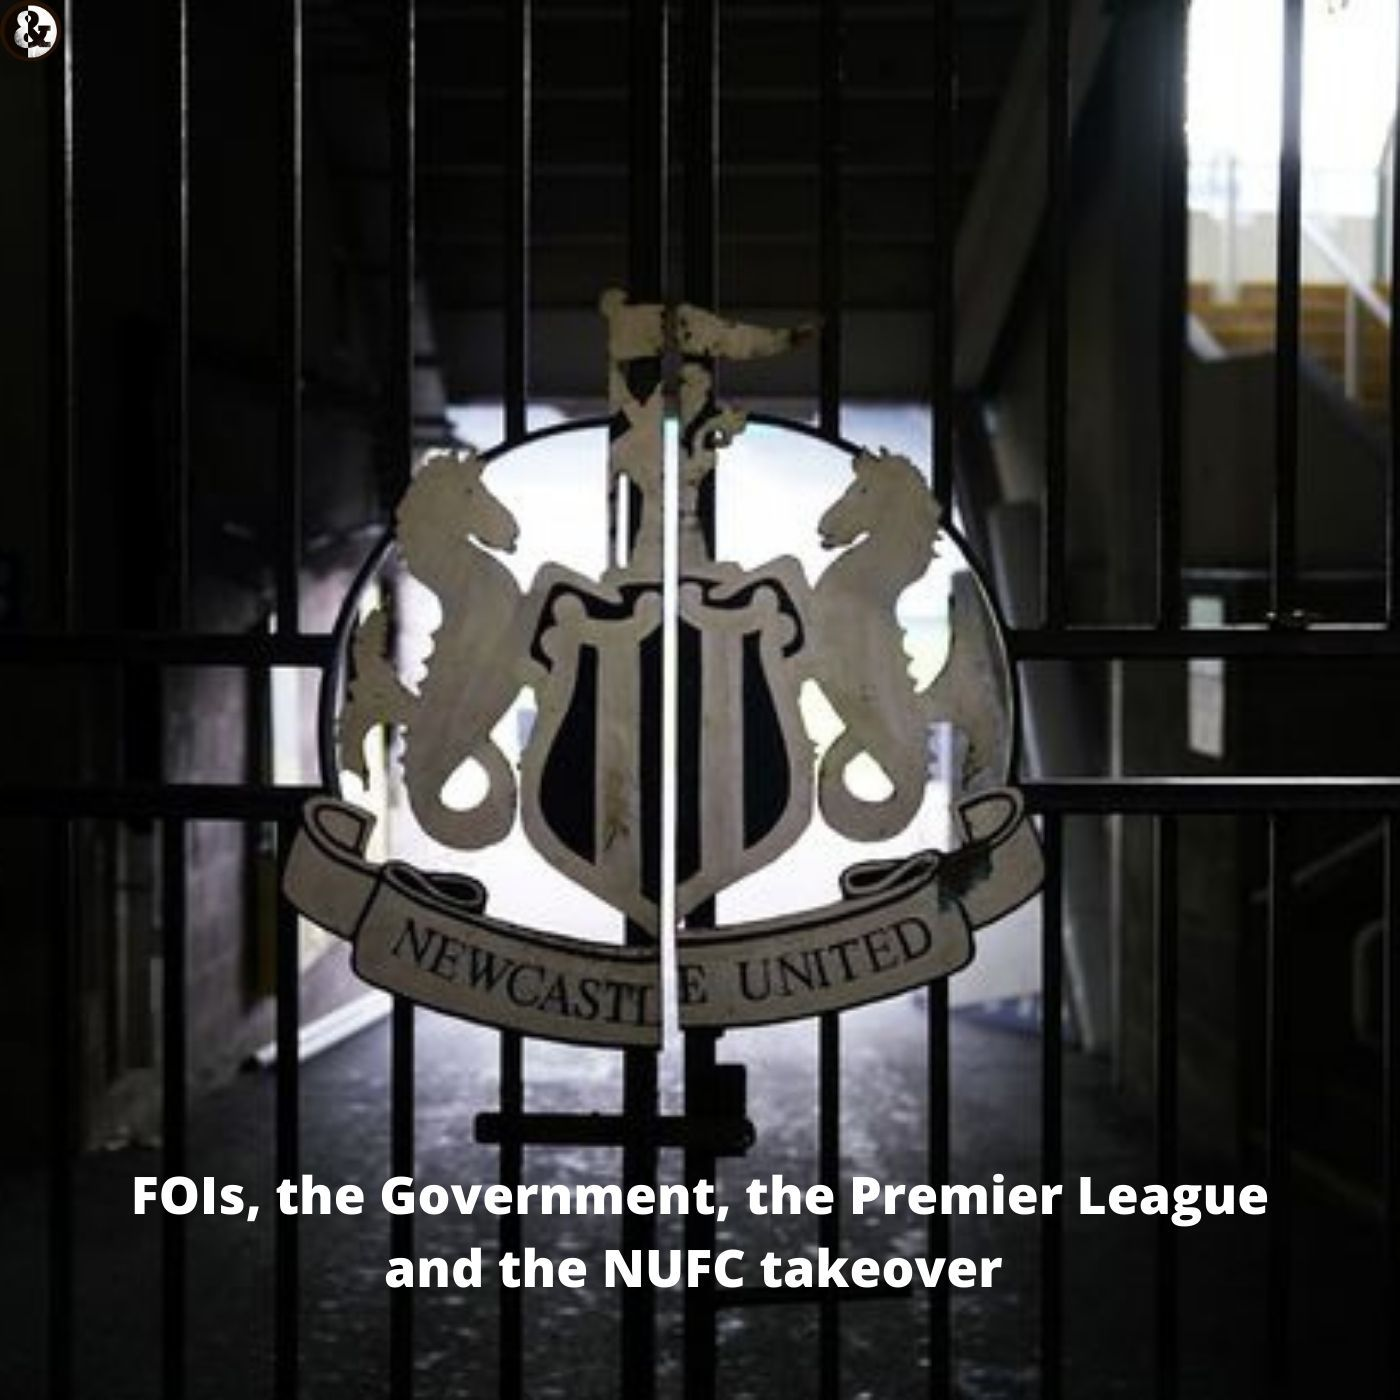 The NUFC takeover exclusive: What the Premier League asked of the government